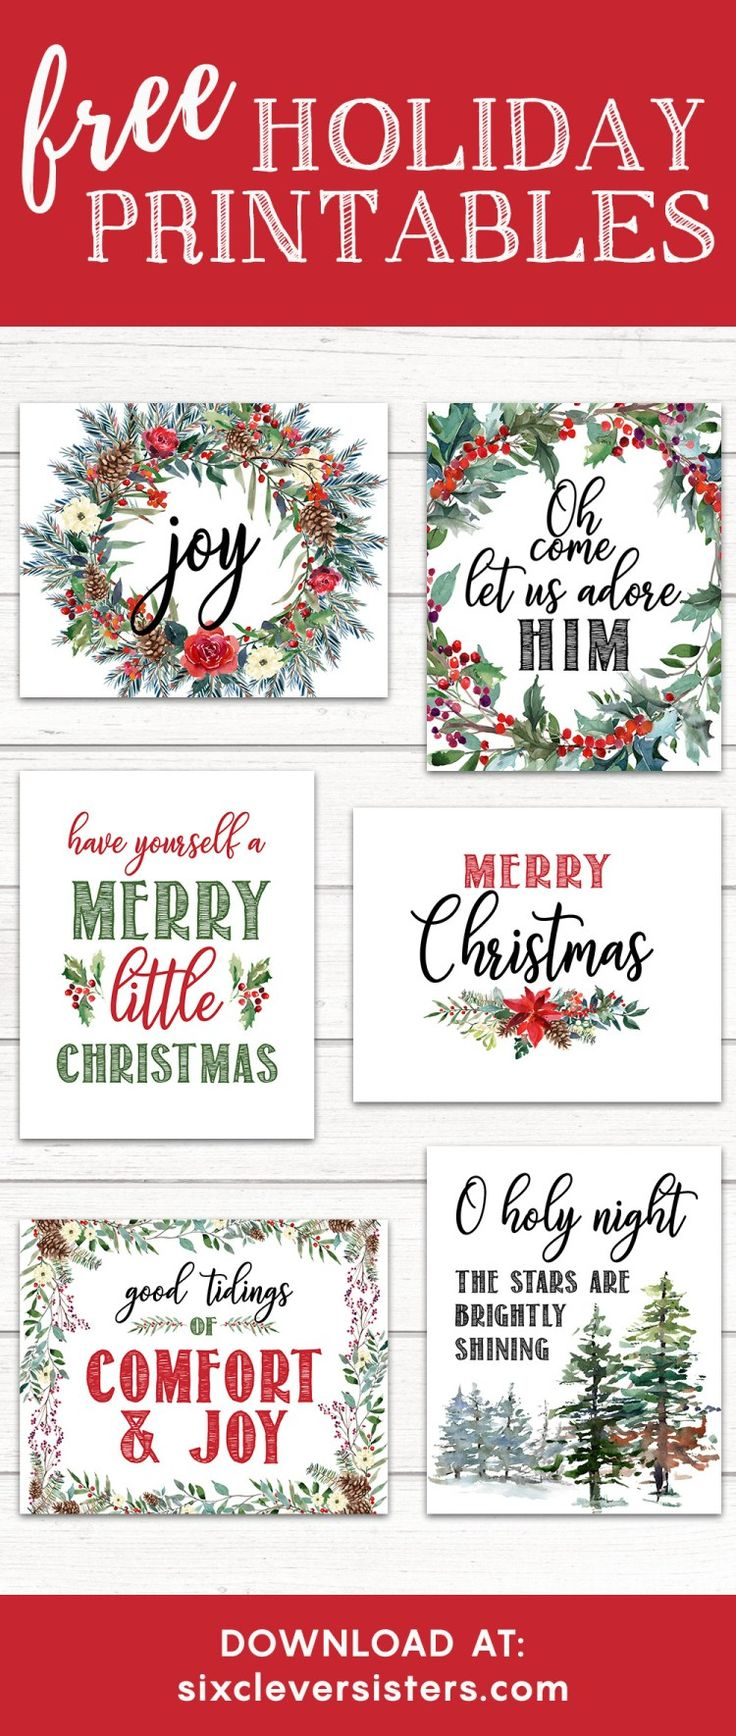 Printable Christmas Signs | Free Printable Christmas Signs | Holiday Printable Signs | Christmas Printables Free | Christmas Printables Free 8x10 | Just download and print these Christmas signs on the Six Clever Sisters blog for an easy way to add extra holiday decor!